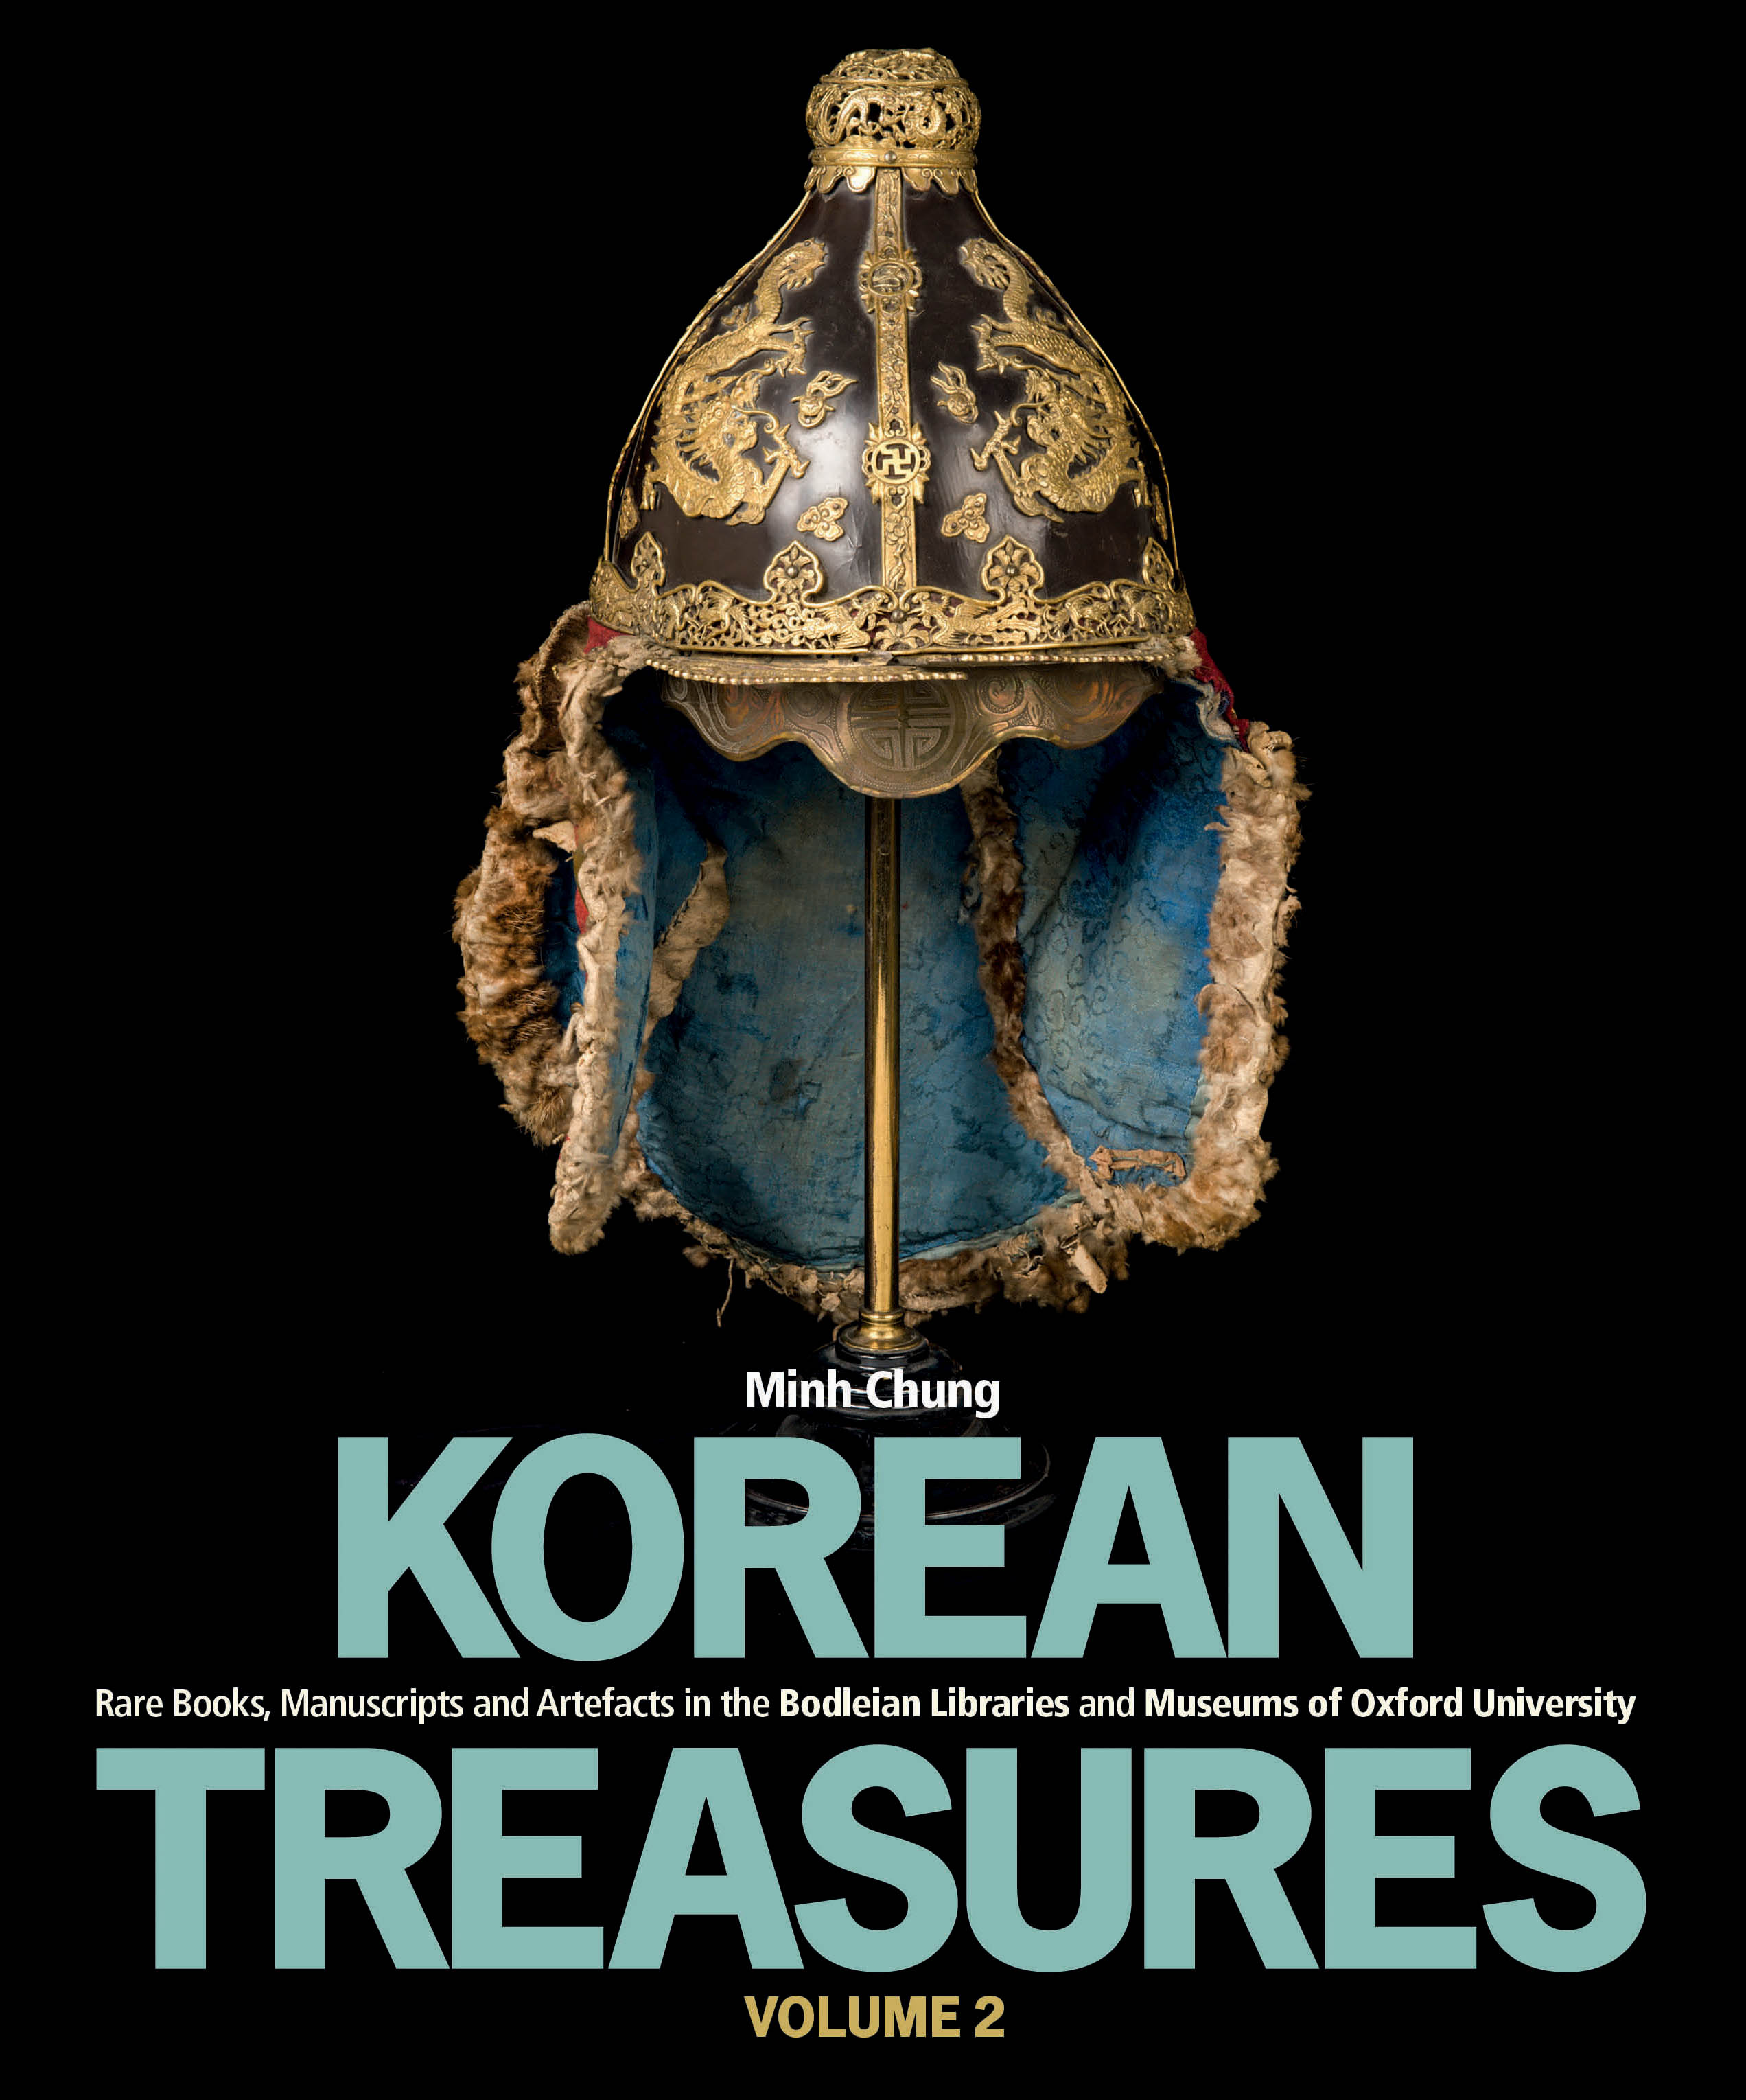 Korean Treasures Volume 2: Rare Books, Manuscripts and Artefacts in the Bodleian Libraries and Museums of Oxford University